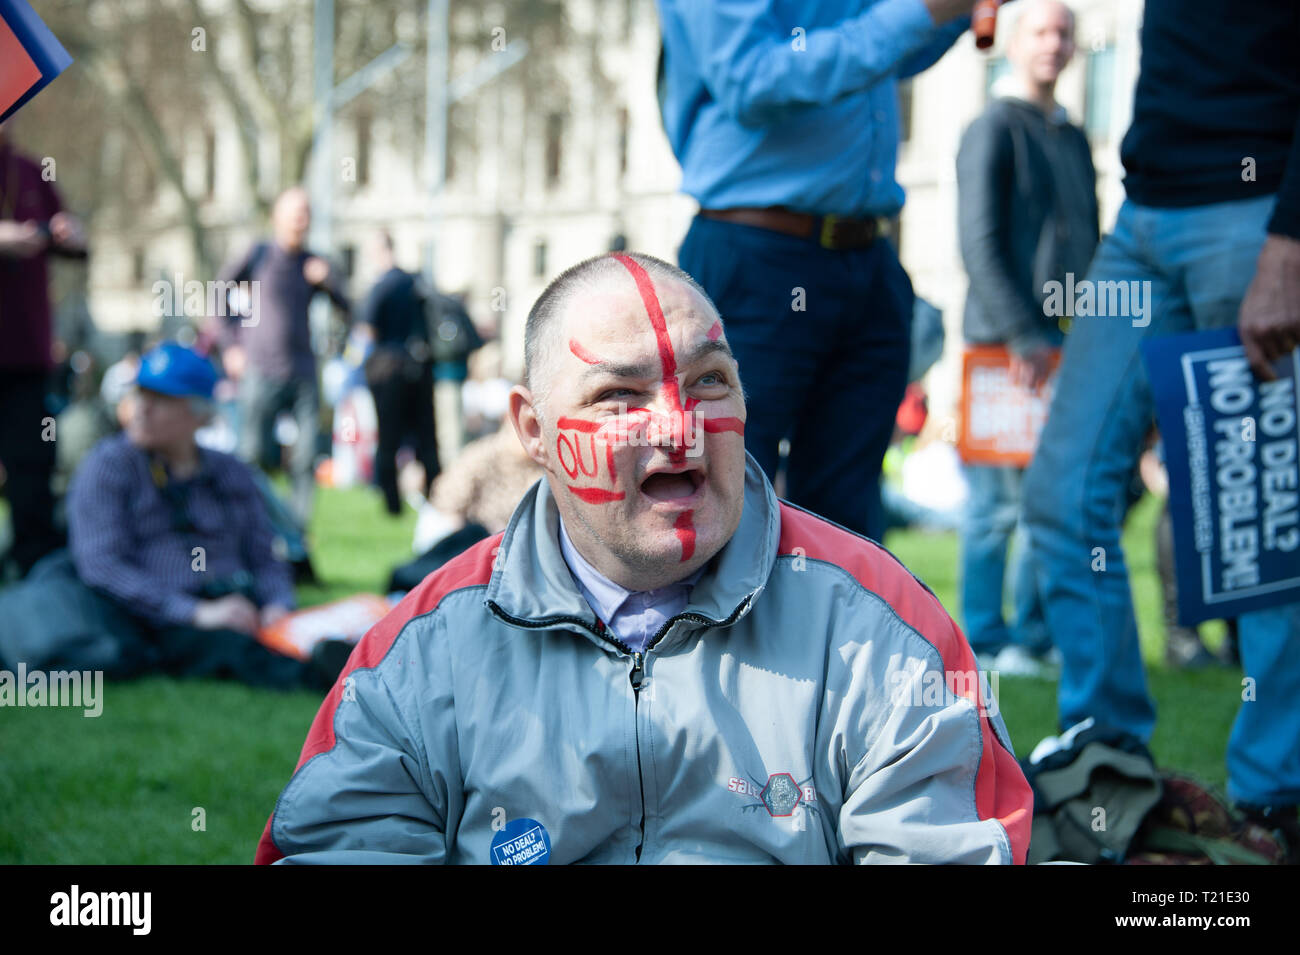 London, United Kingdom. 29th Mar, 2019. A Pro Leave protestor with painted Pro Leave face during a rally near Parliament Square. Credit: Sandip Savasadia/Alamy Live News - Stock Image